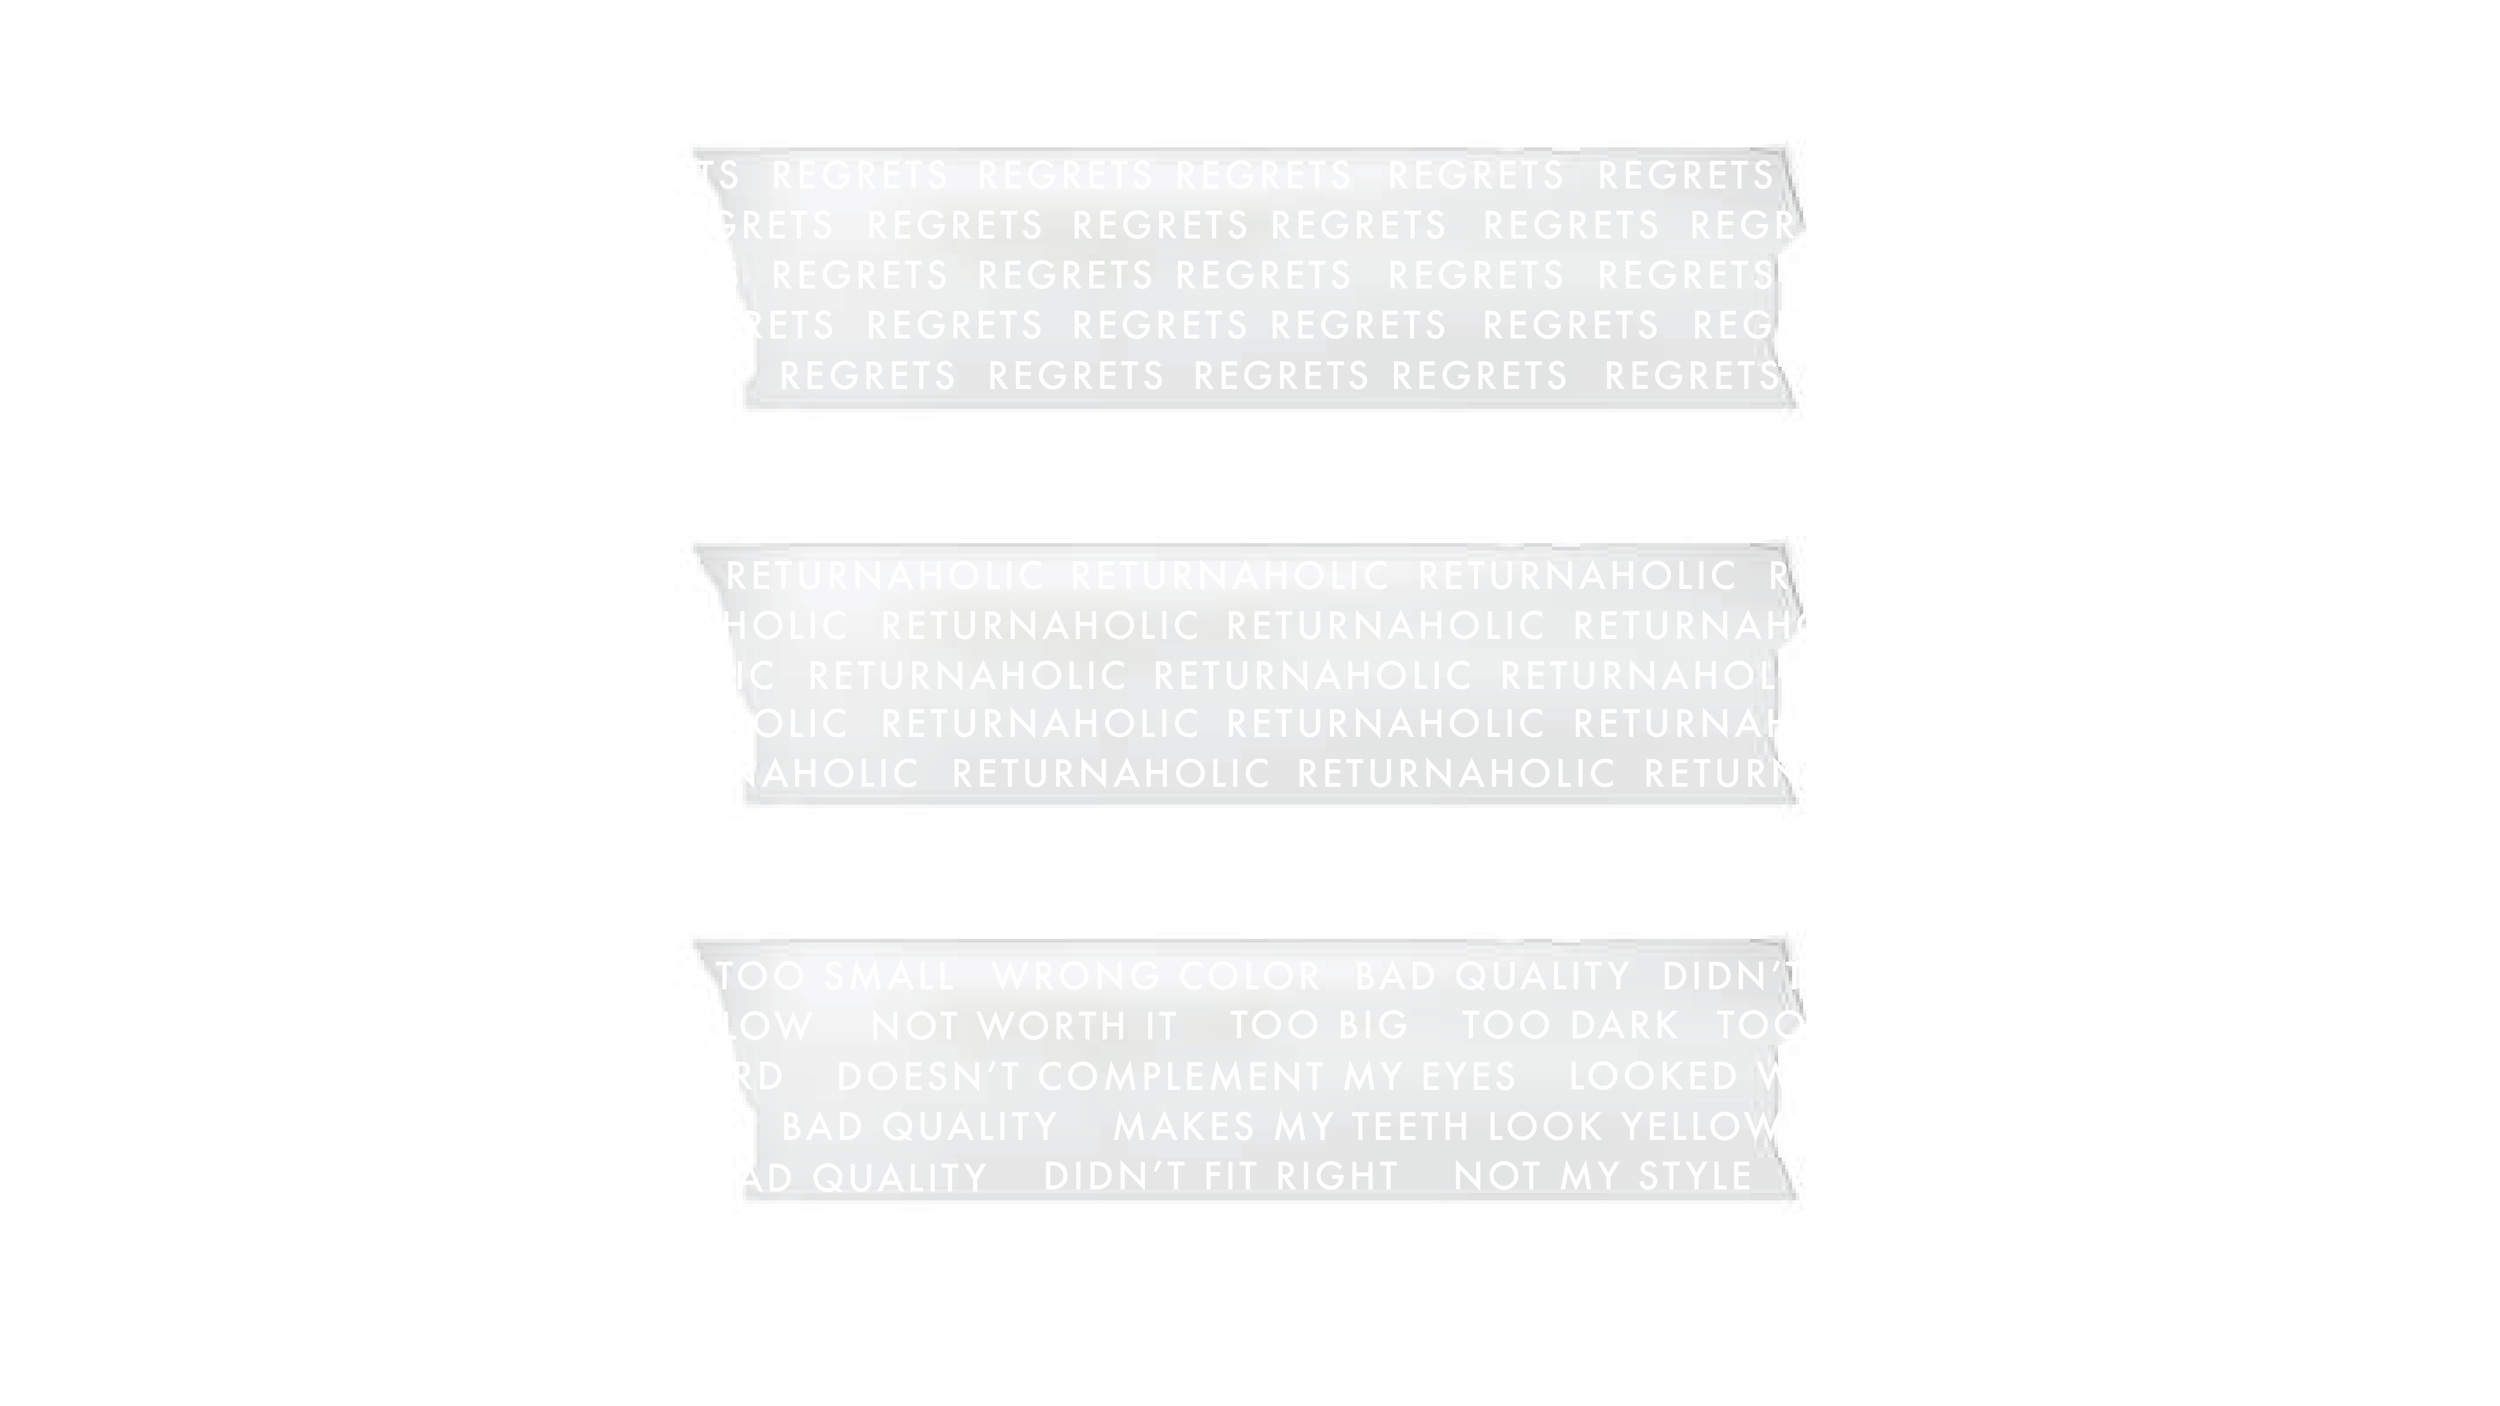 Tape_Extensions-01 (1) (1).png